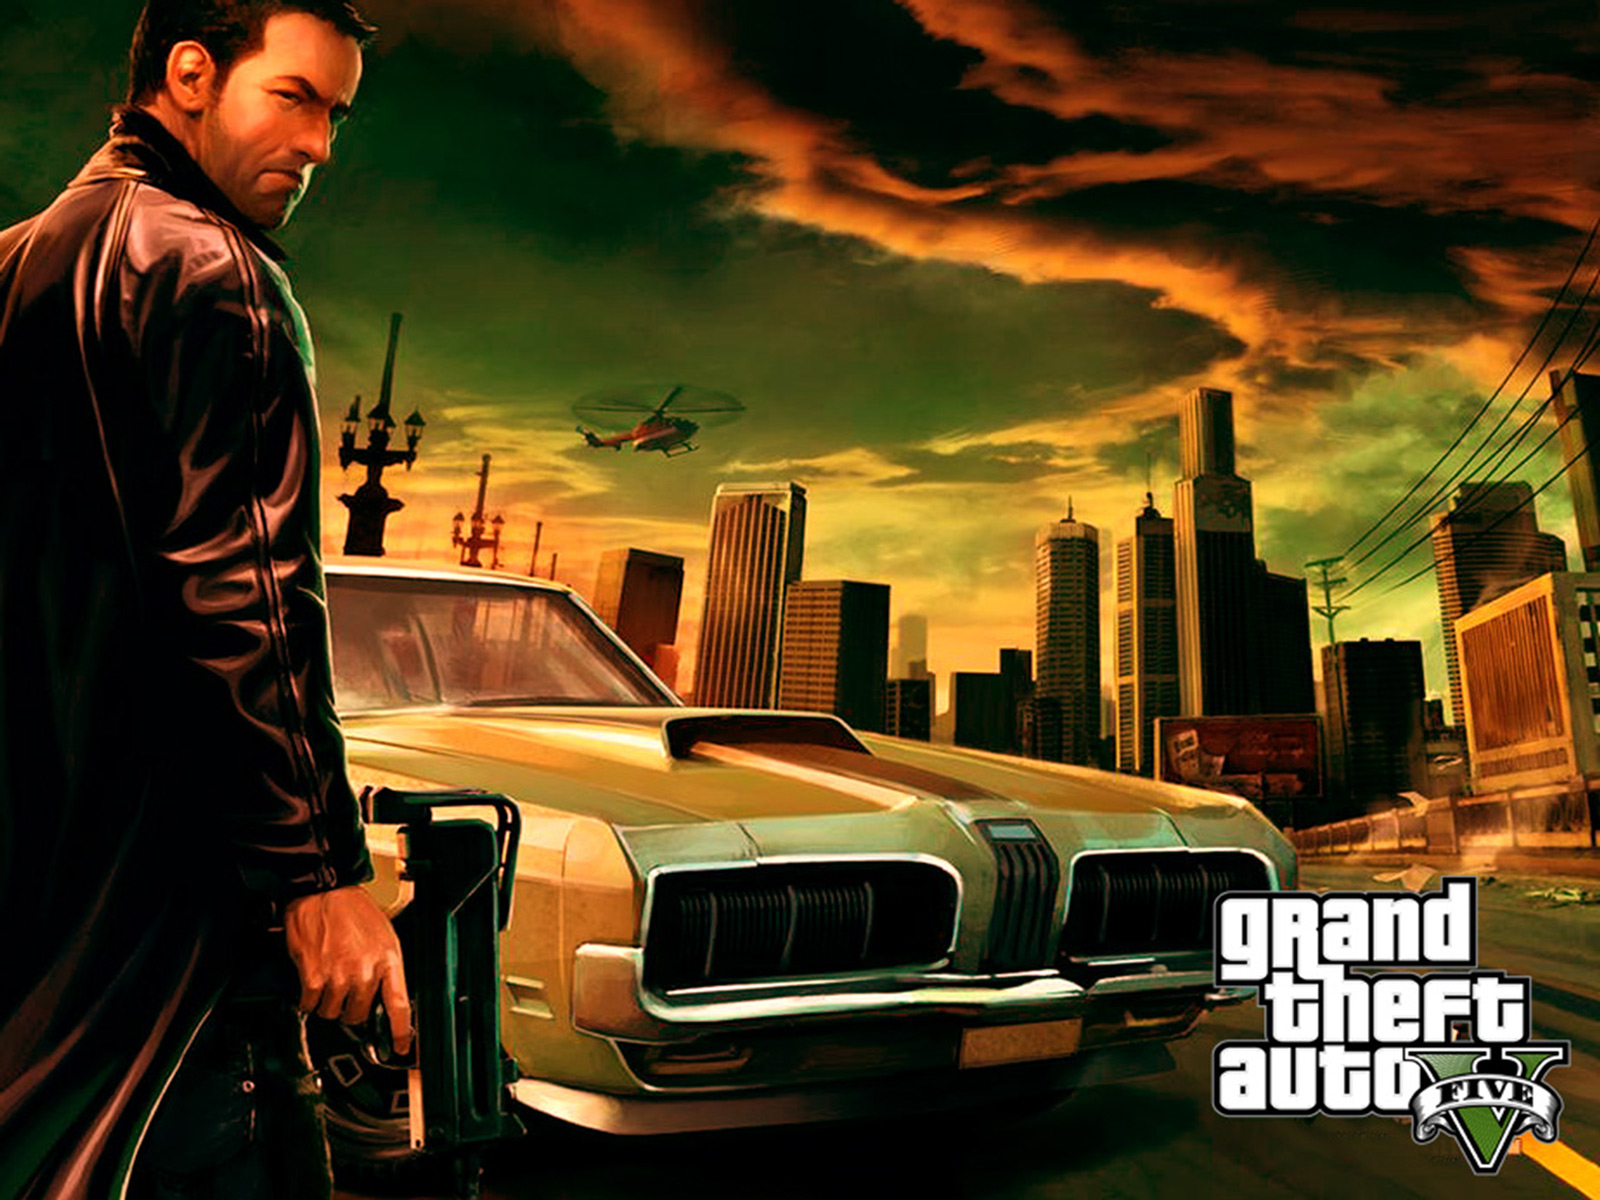 gta 5 music mp3 free download